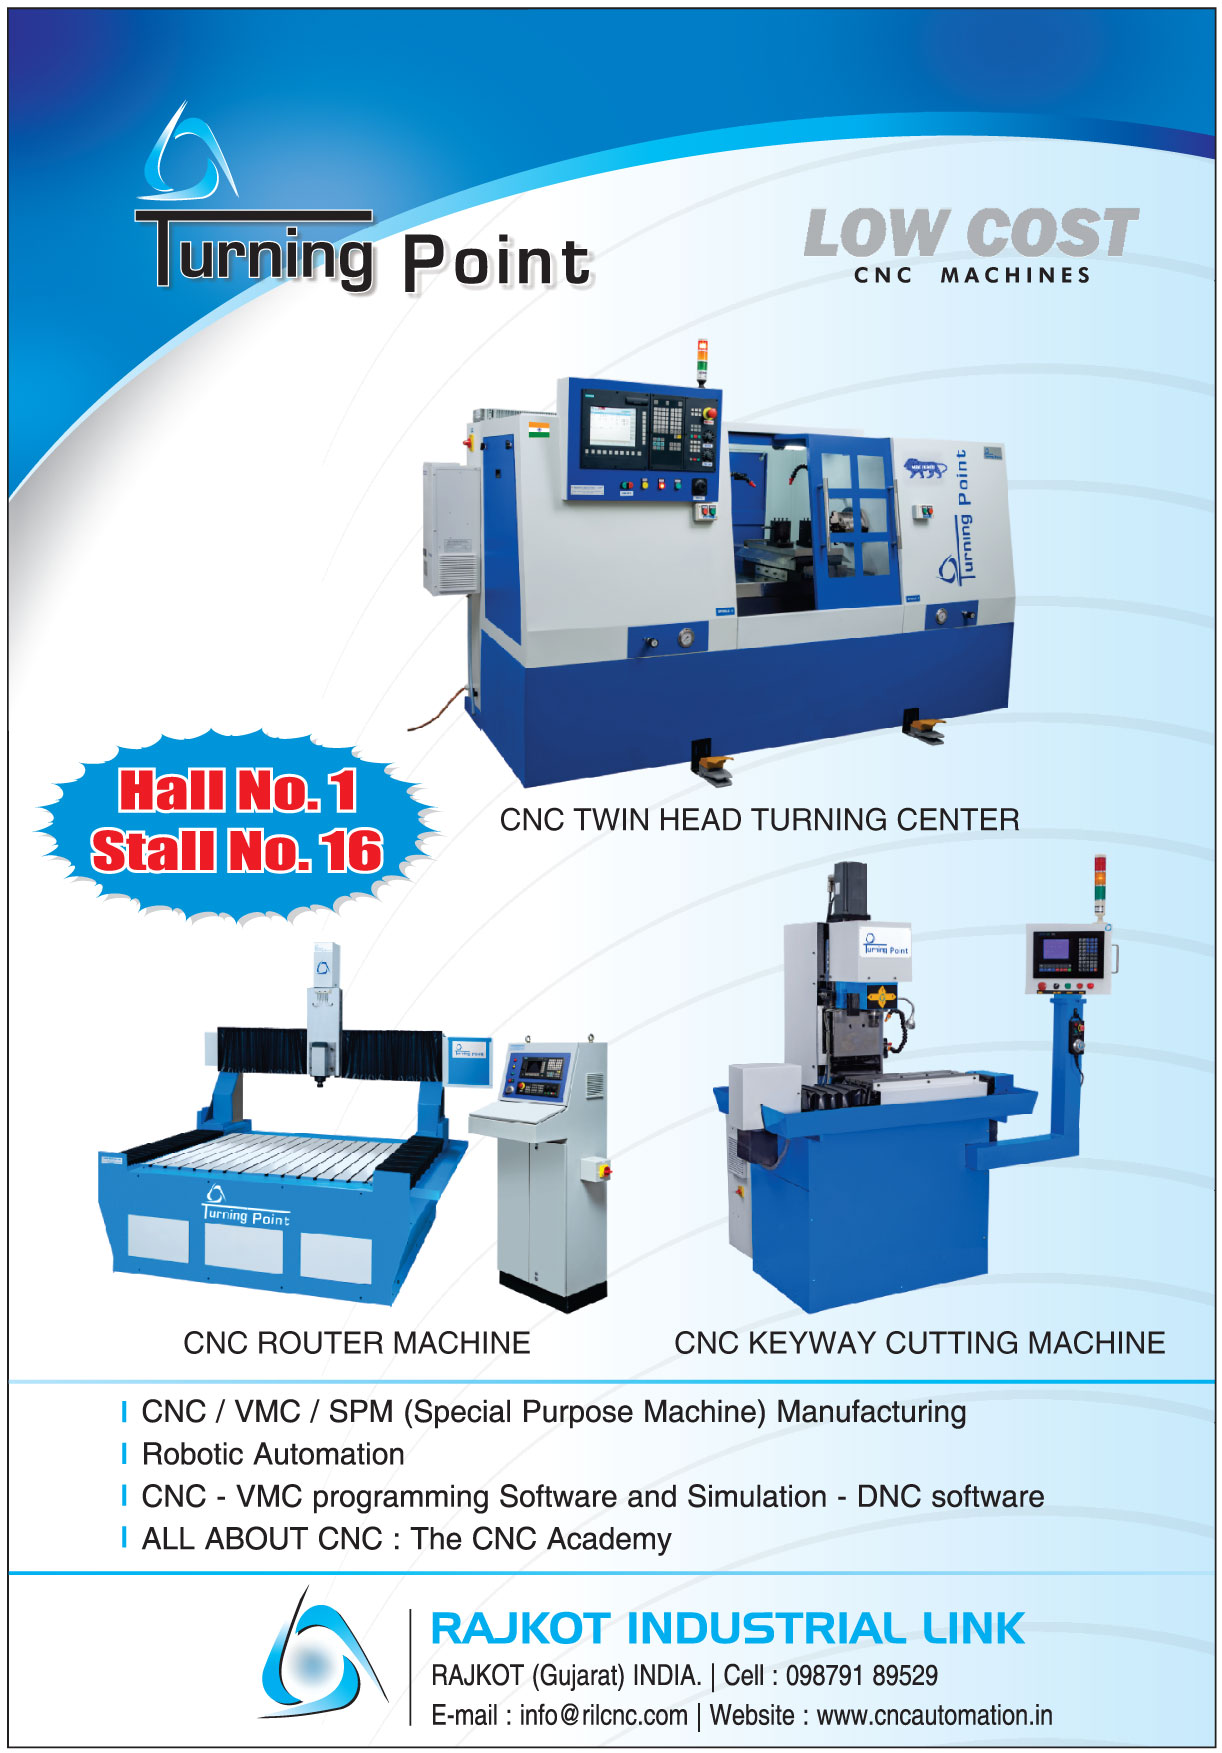 CNC Machines   CNC Twin Head Turning Center Machines   CNC Router